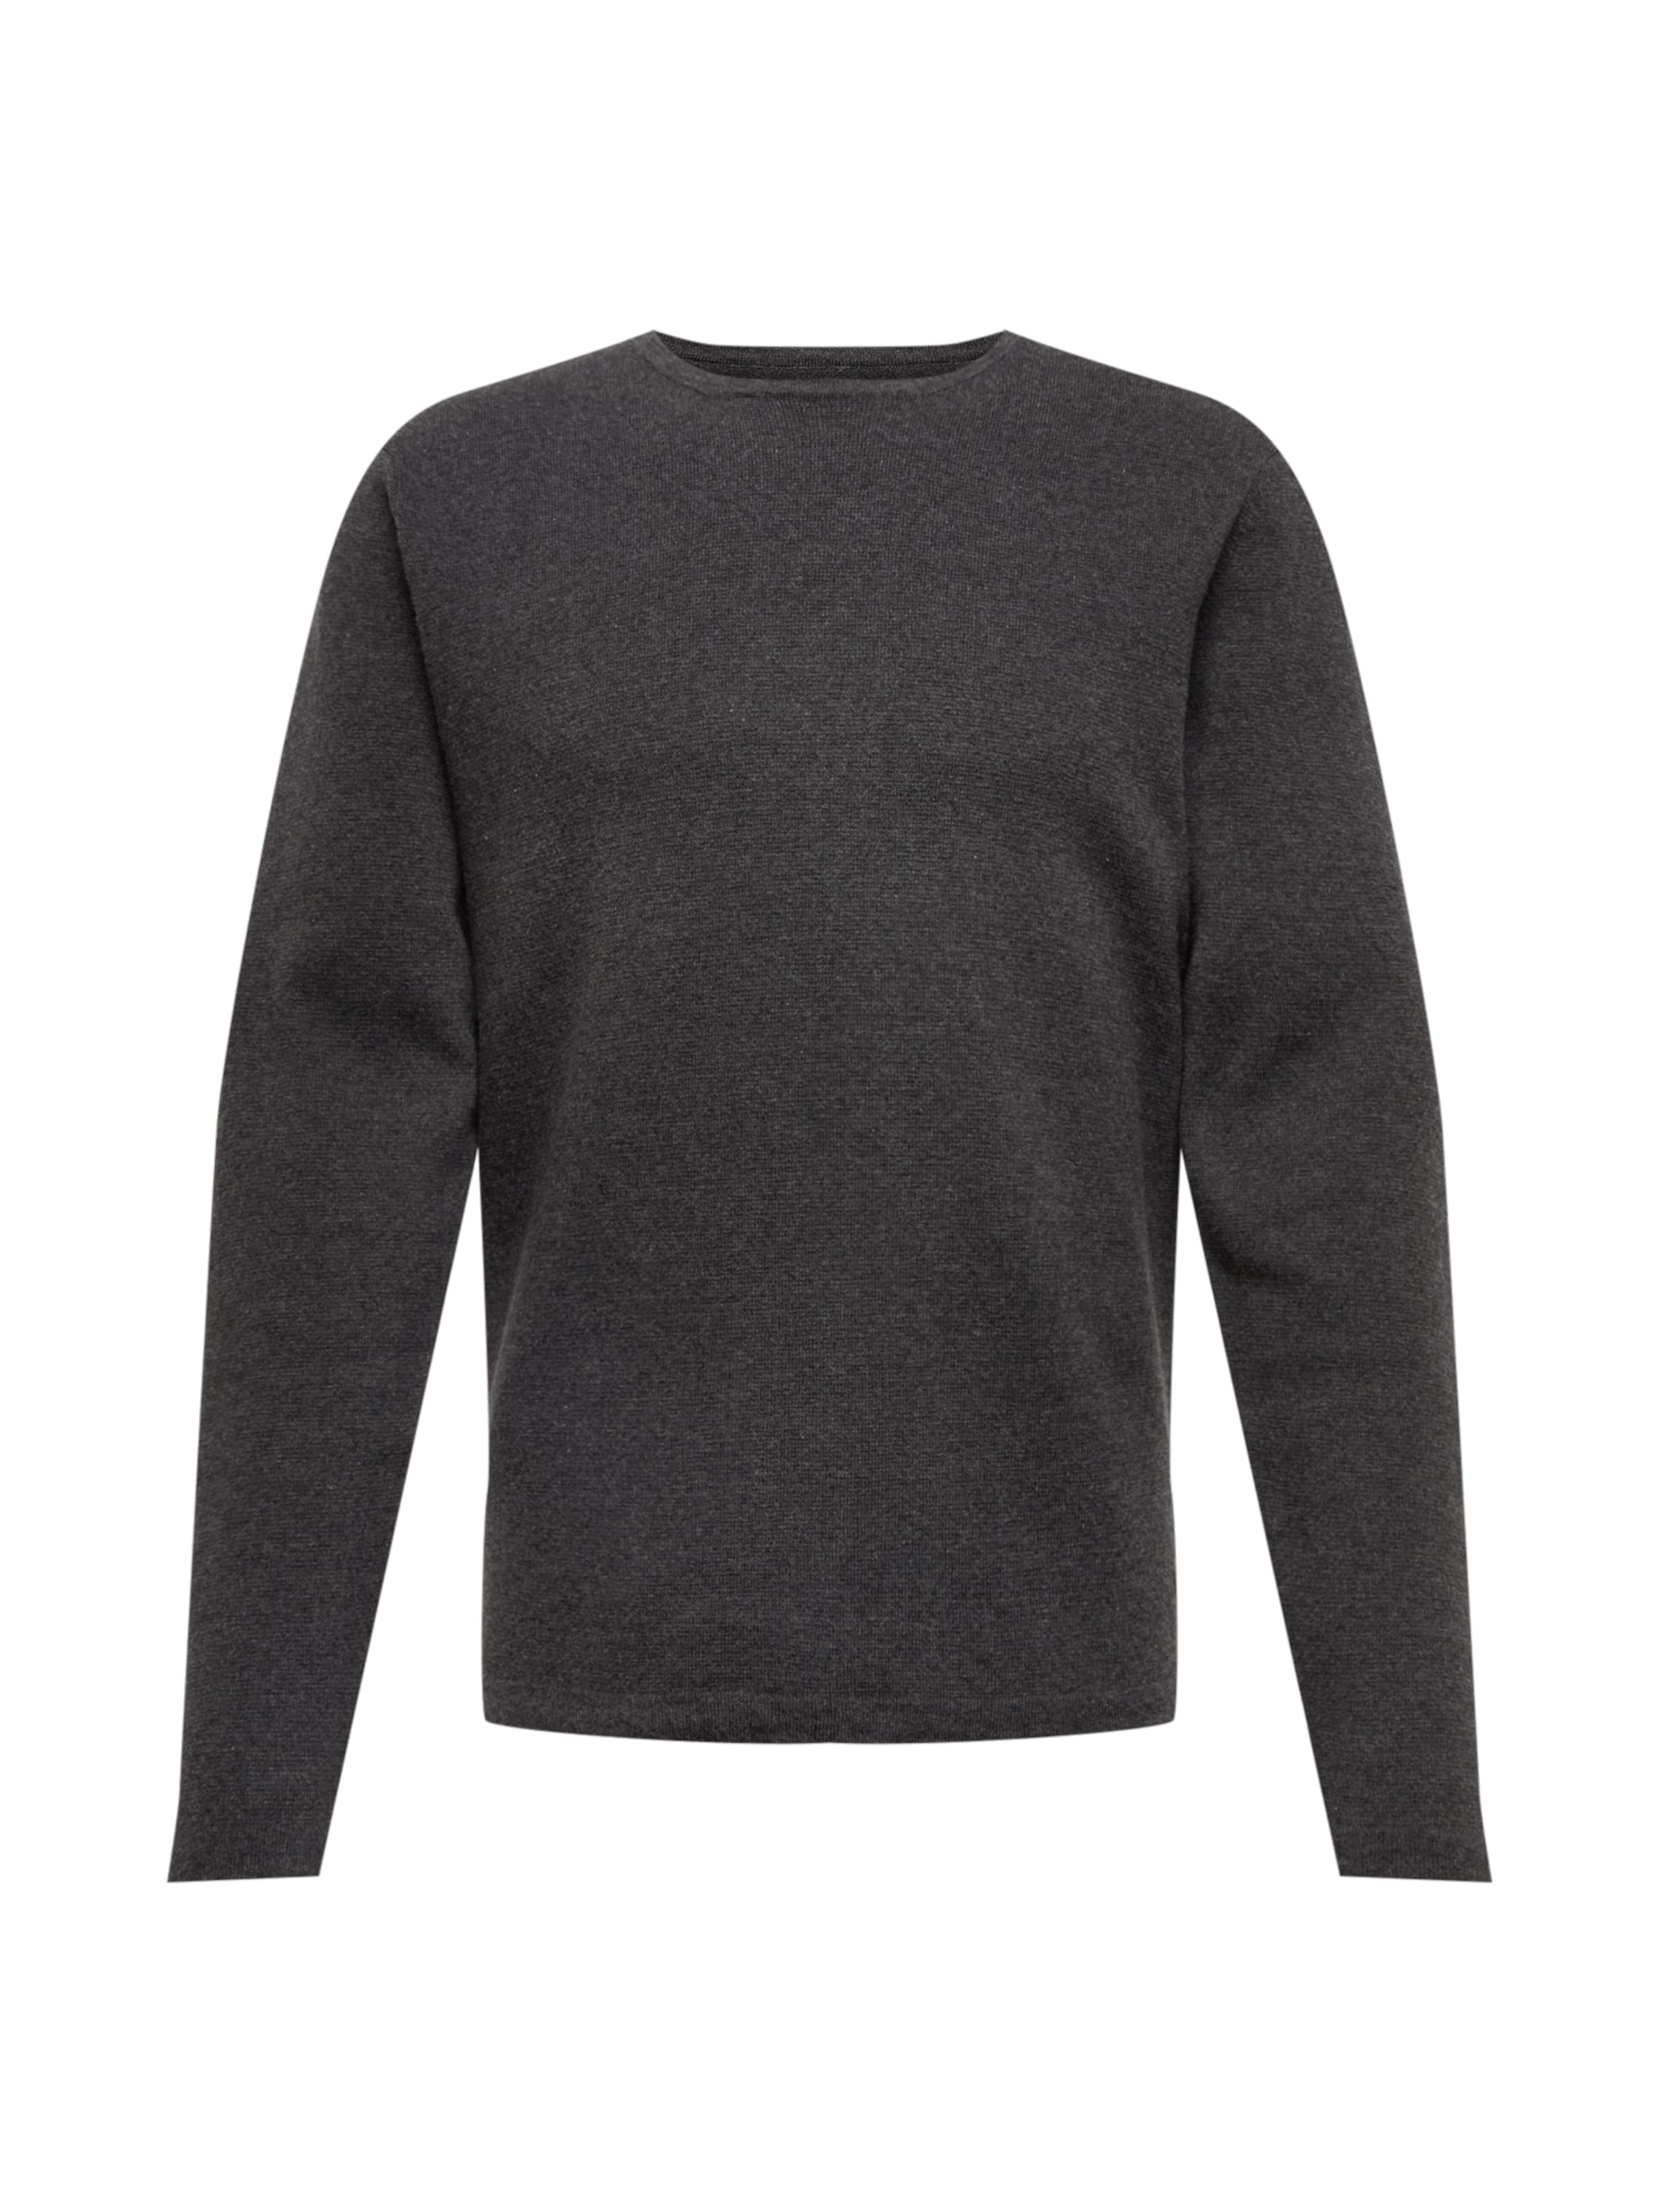 Casual In In Friday Pullover Casual Friday Pullover Friday Pullover Anthrazit In Casual Anthrazit RjAL453